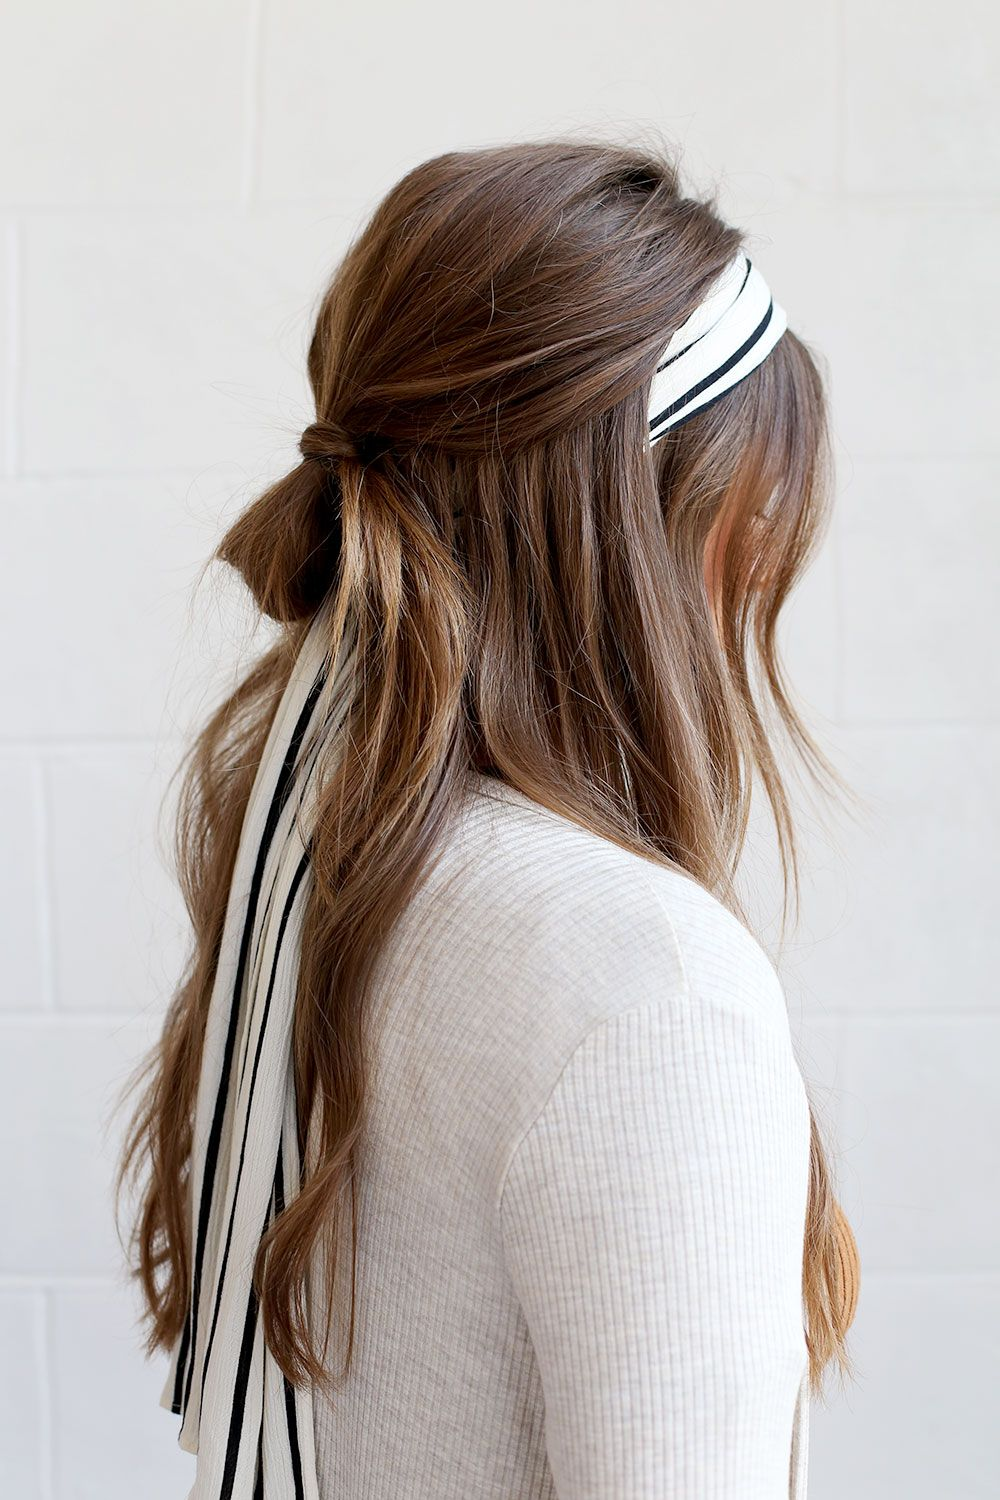 Simple Hairstyles How To Wear It The Hair Scarf Trend  Hair Scarfs And Simple Hairstyles